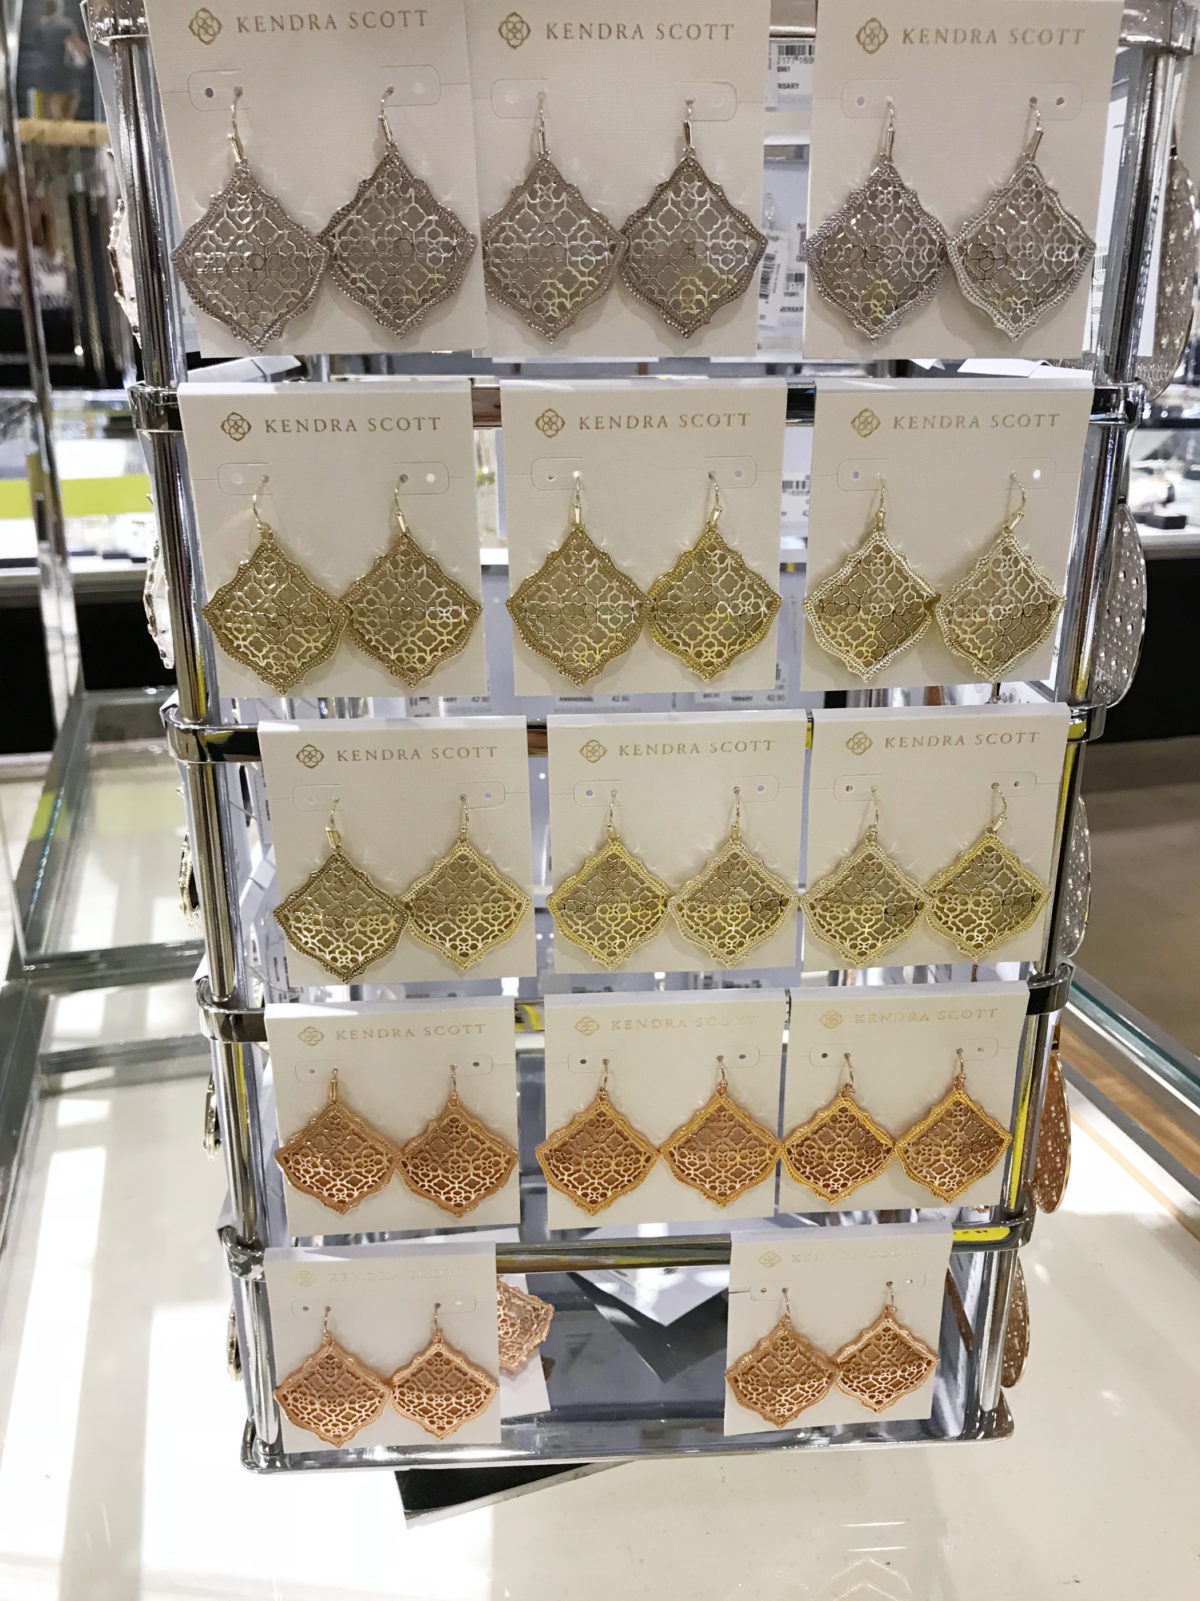 nordstrom anniversary sale kendra scott earrings